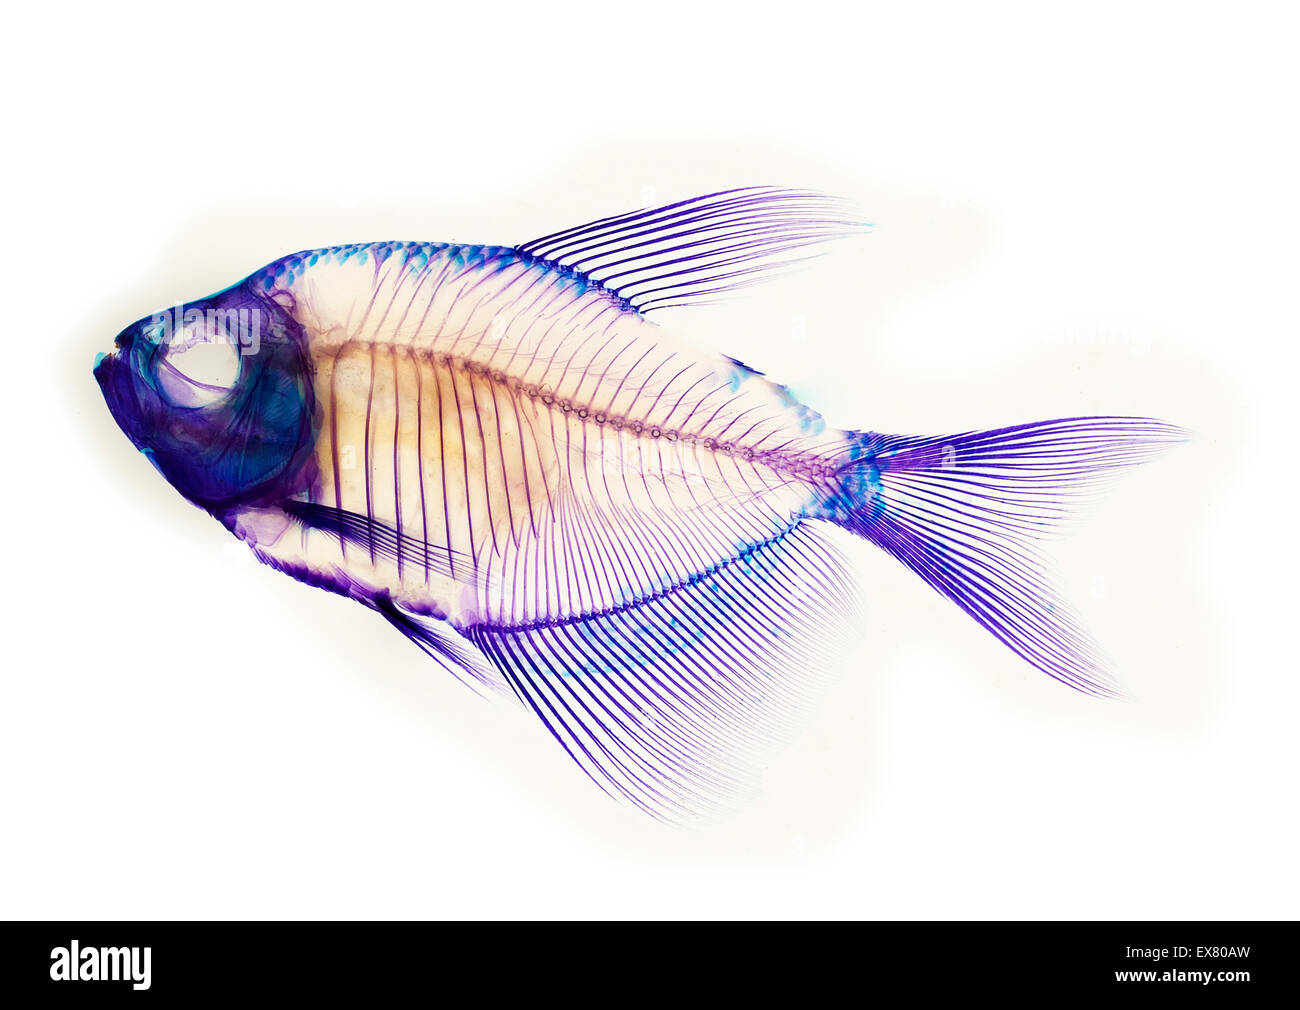 Fish Skeleton Anatomy Stock Photos & Fish Skeleton Anatomy Stock ...